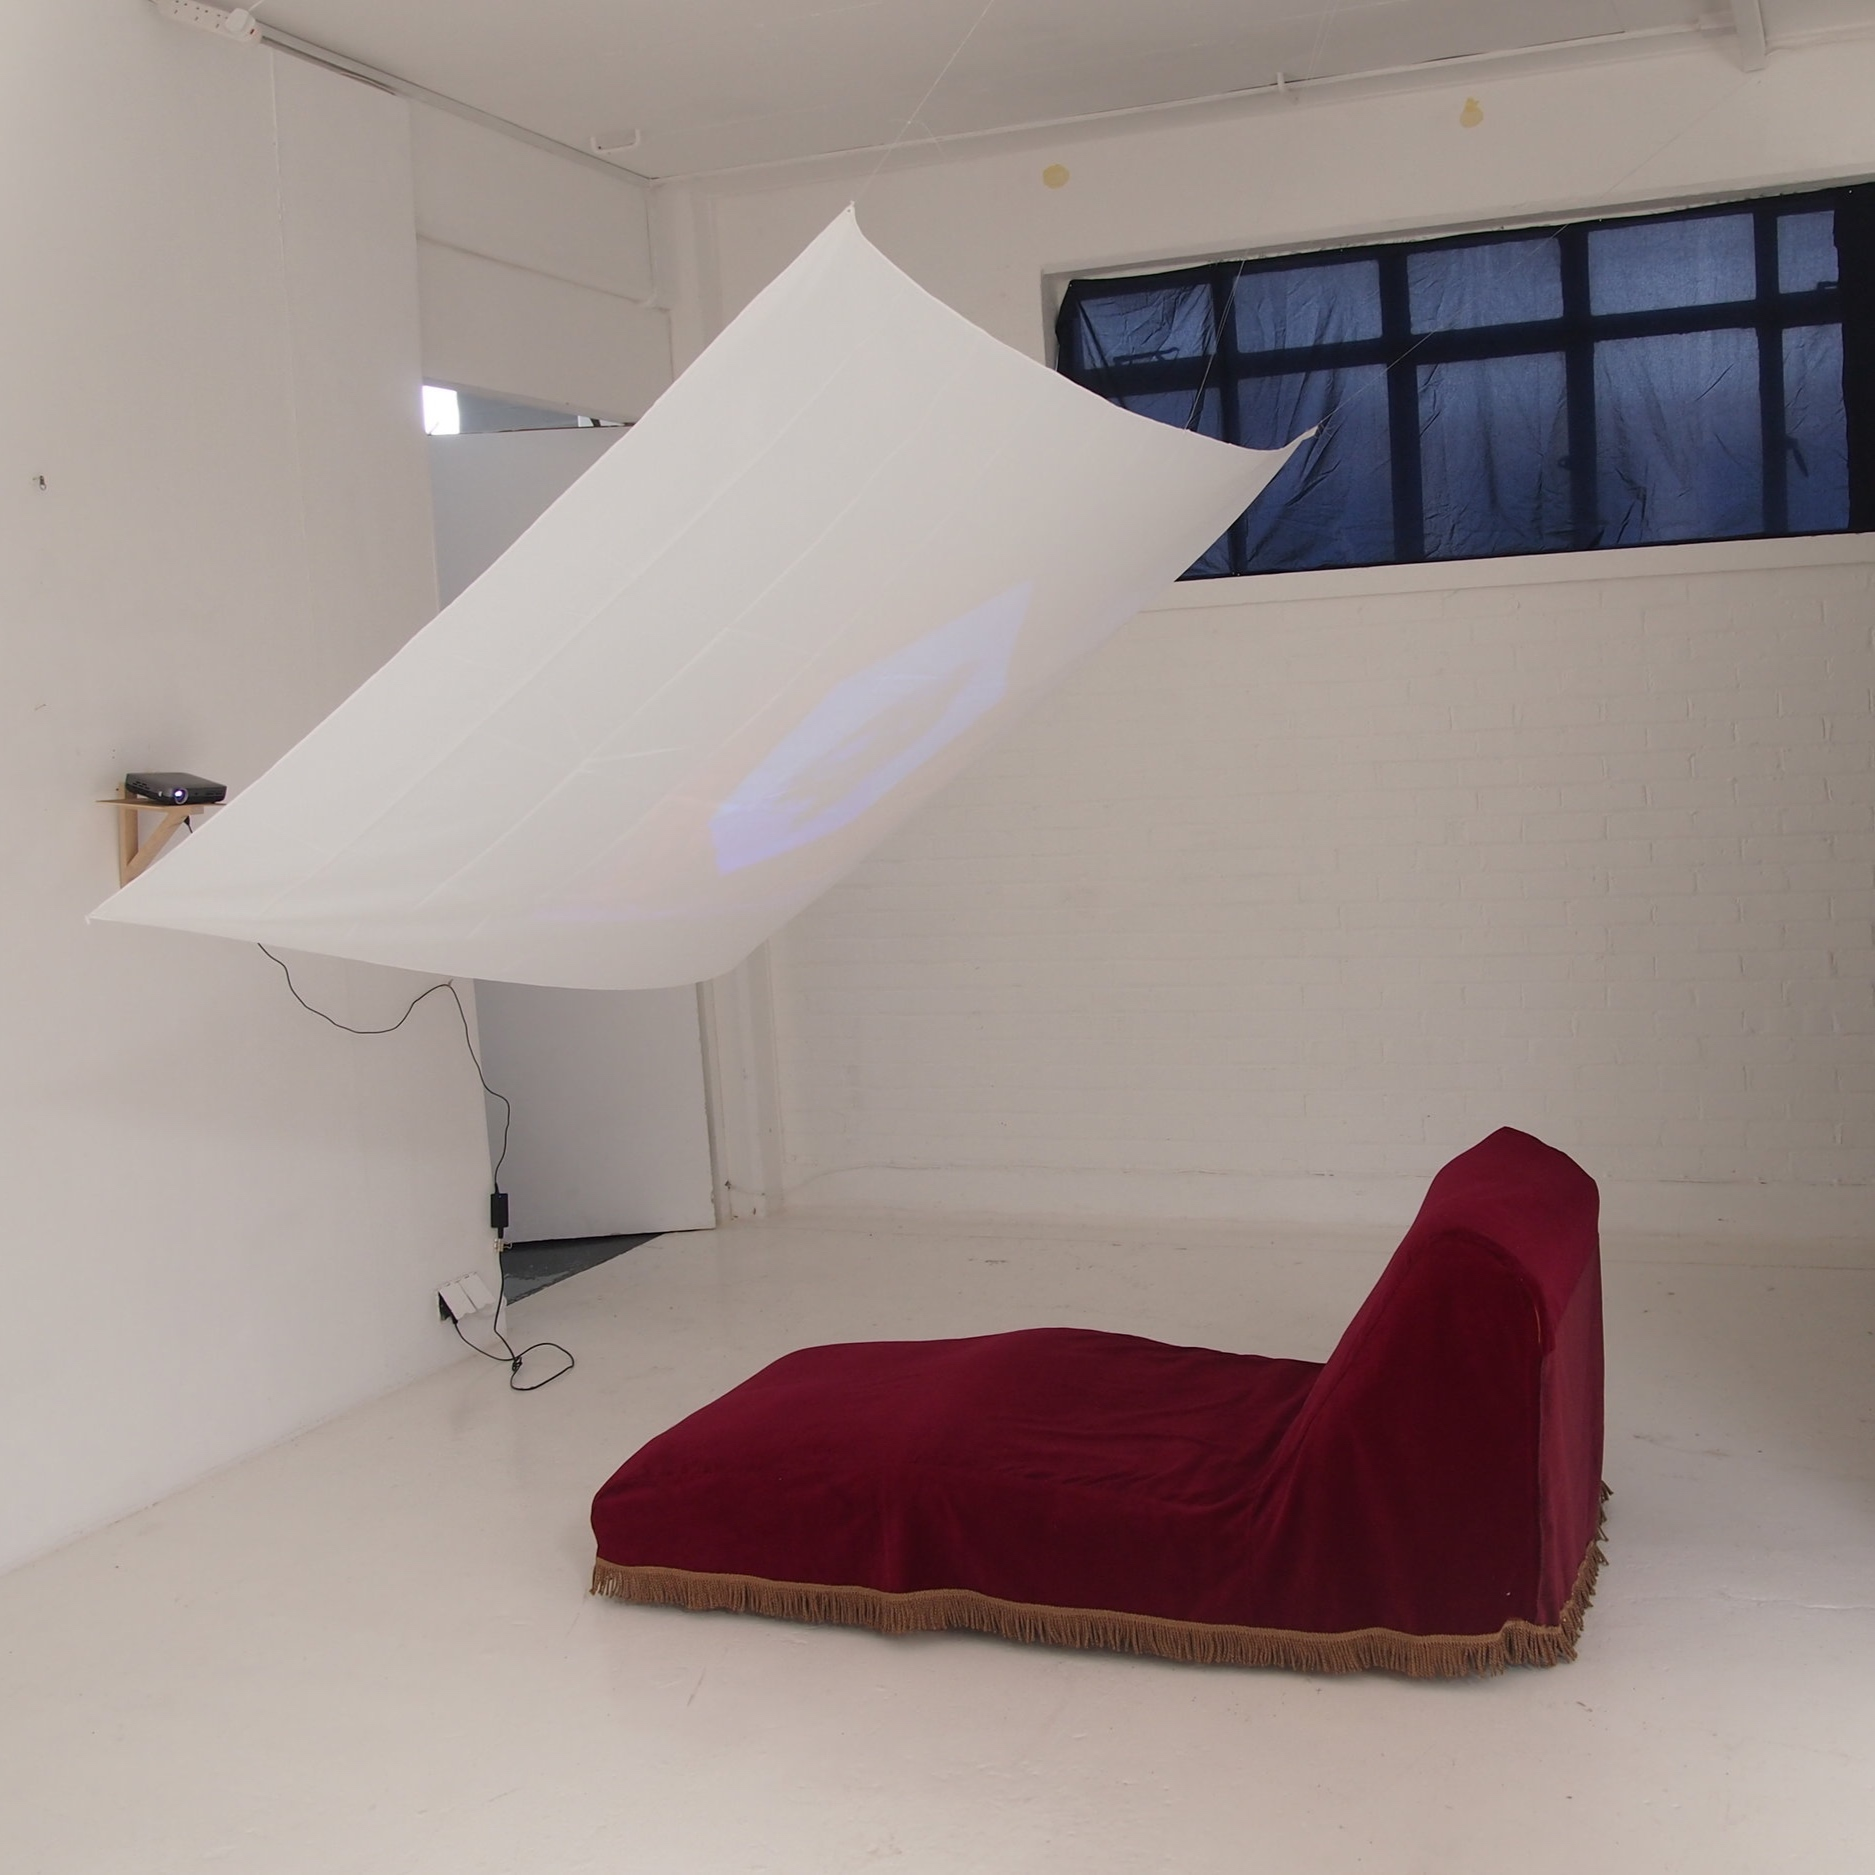 On The Couch  - Test installation at KARST, May 2019